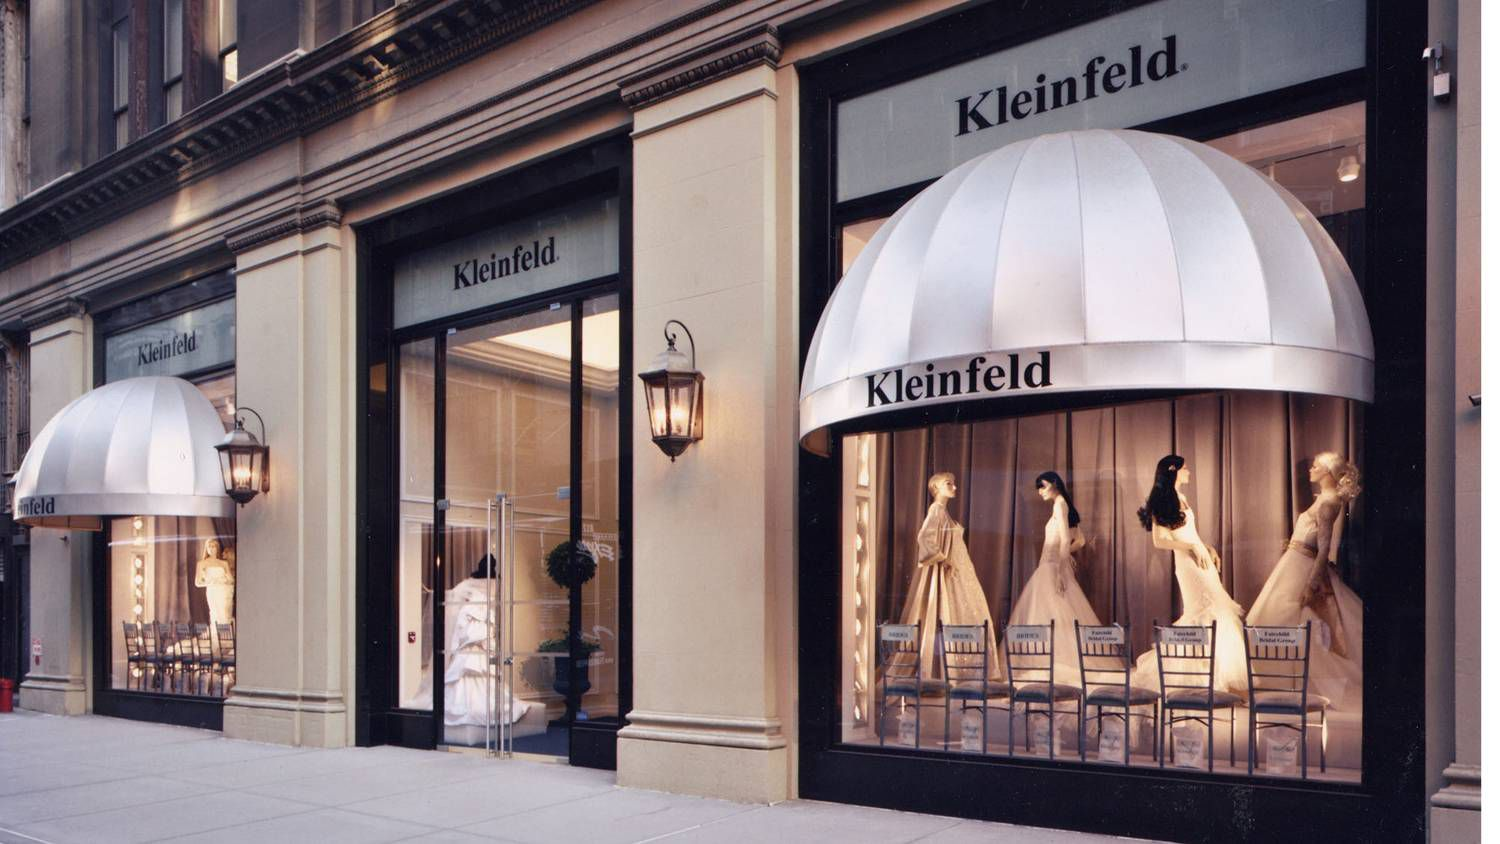 1dbbbb9891b0 Hudson's Bay says 'yes' to Kleinfeld's dresses - The Globe and Mail